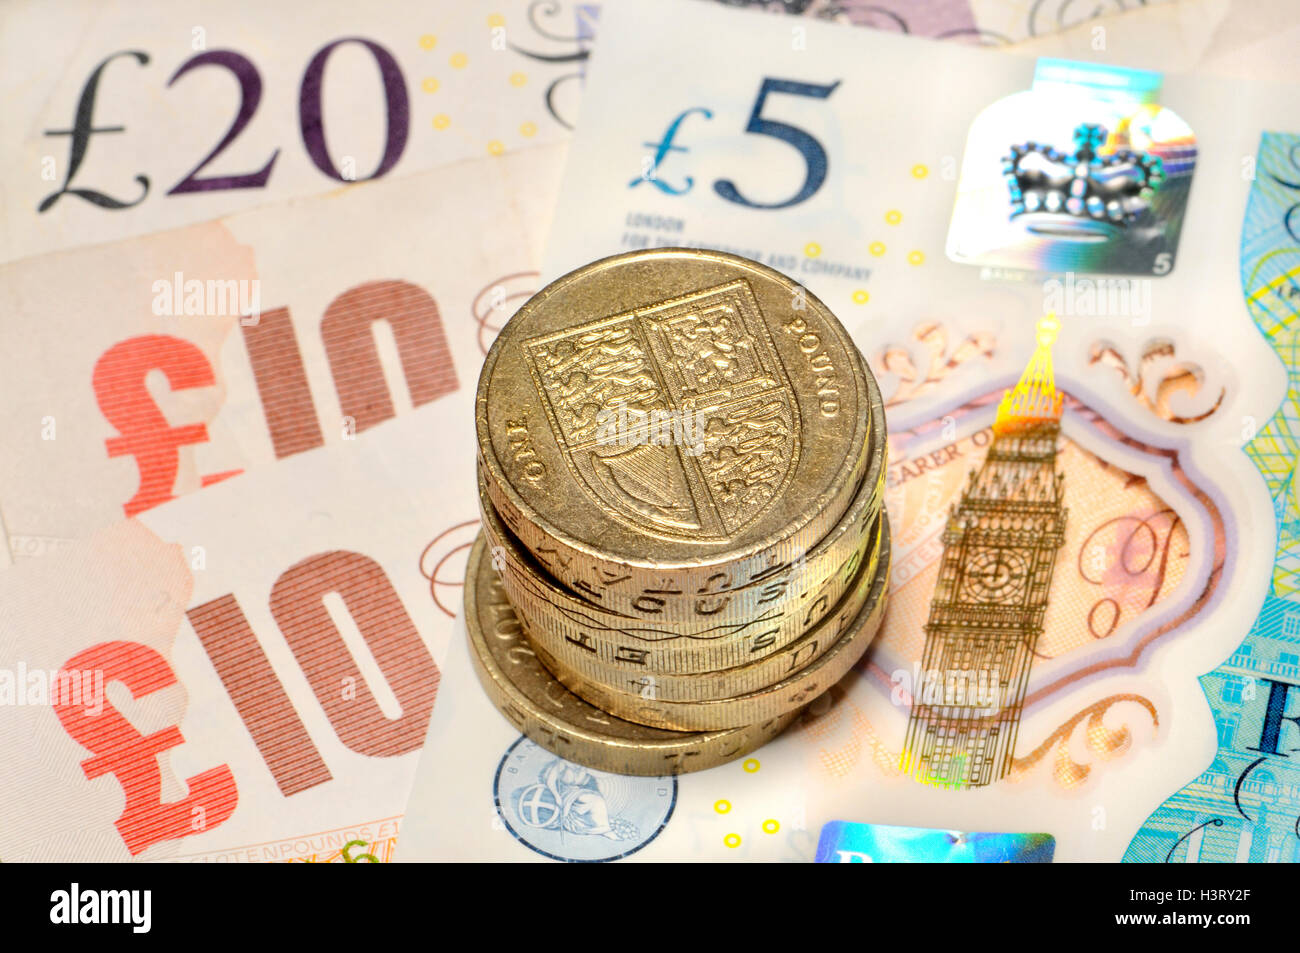 British money - pound coins on notes, including new (2016) polymer £5 - Stock Image